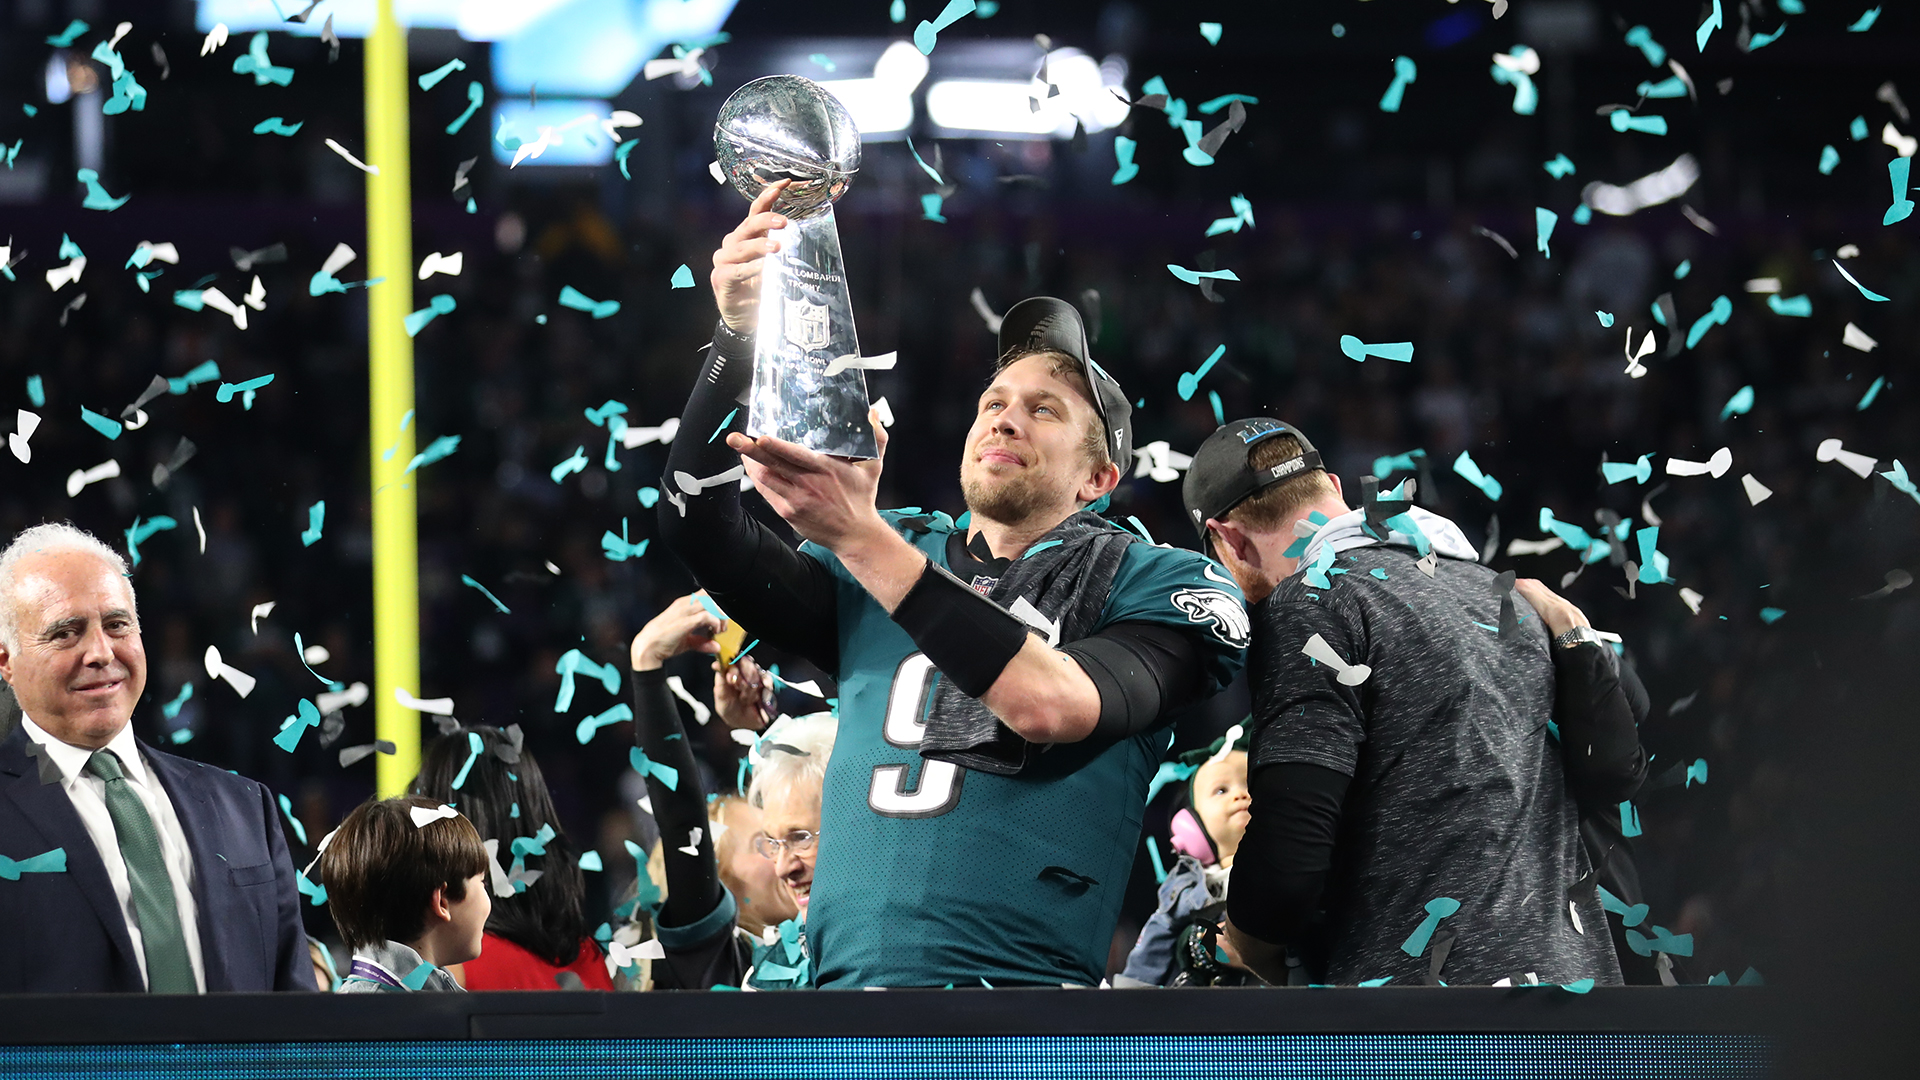 Super Bowl Lii Winner